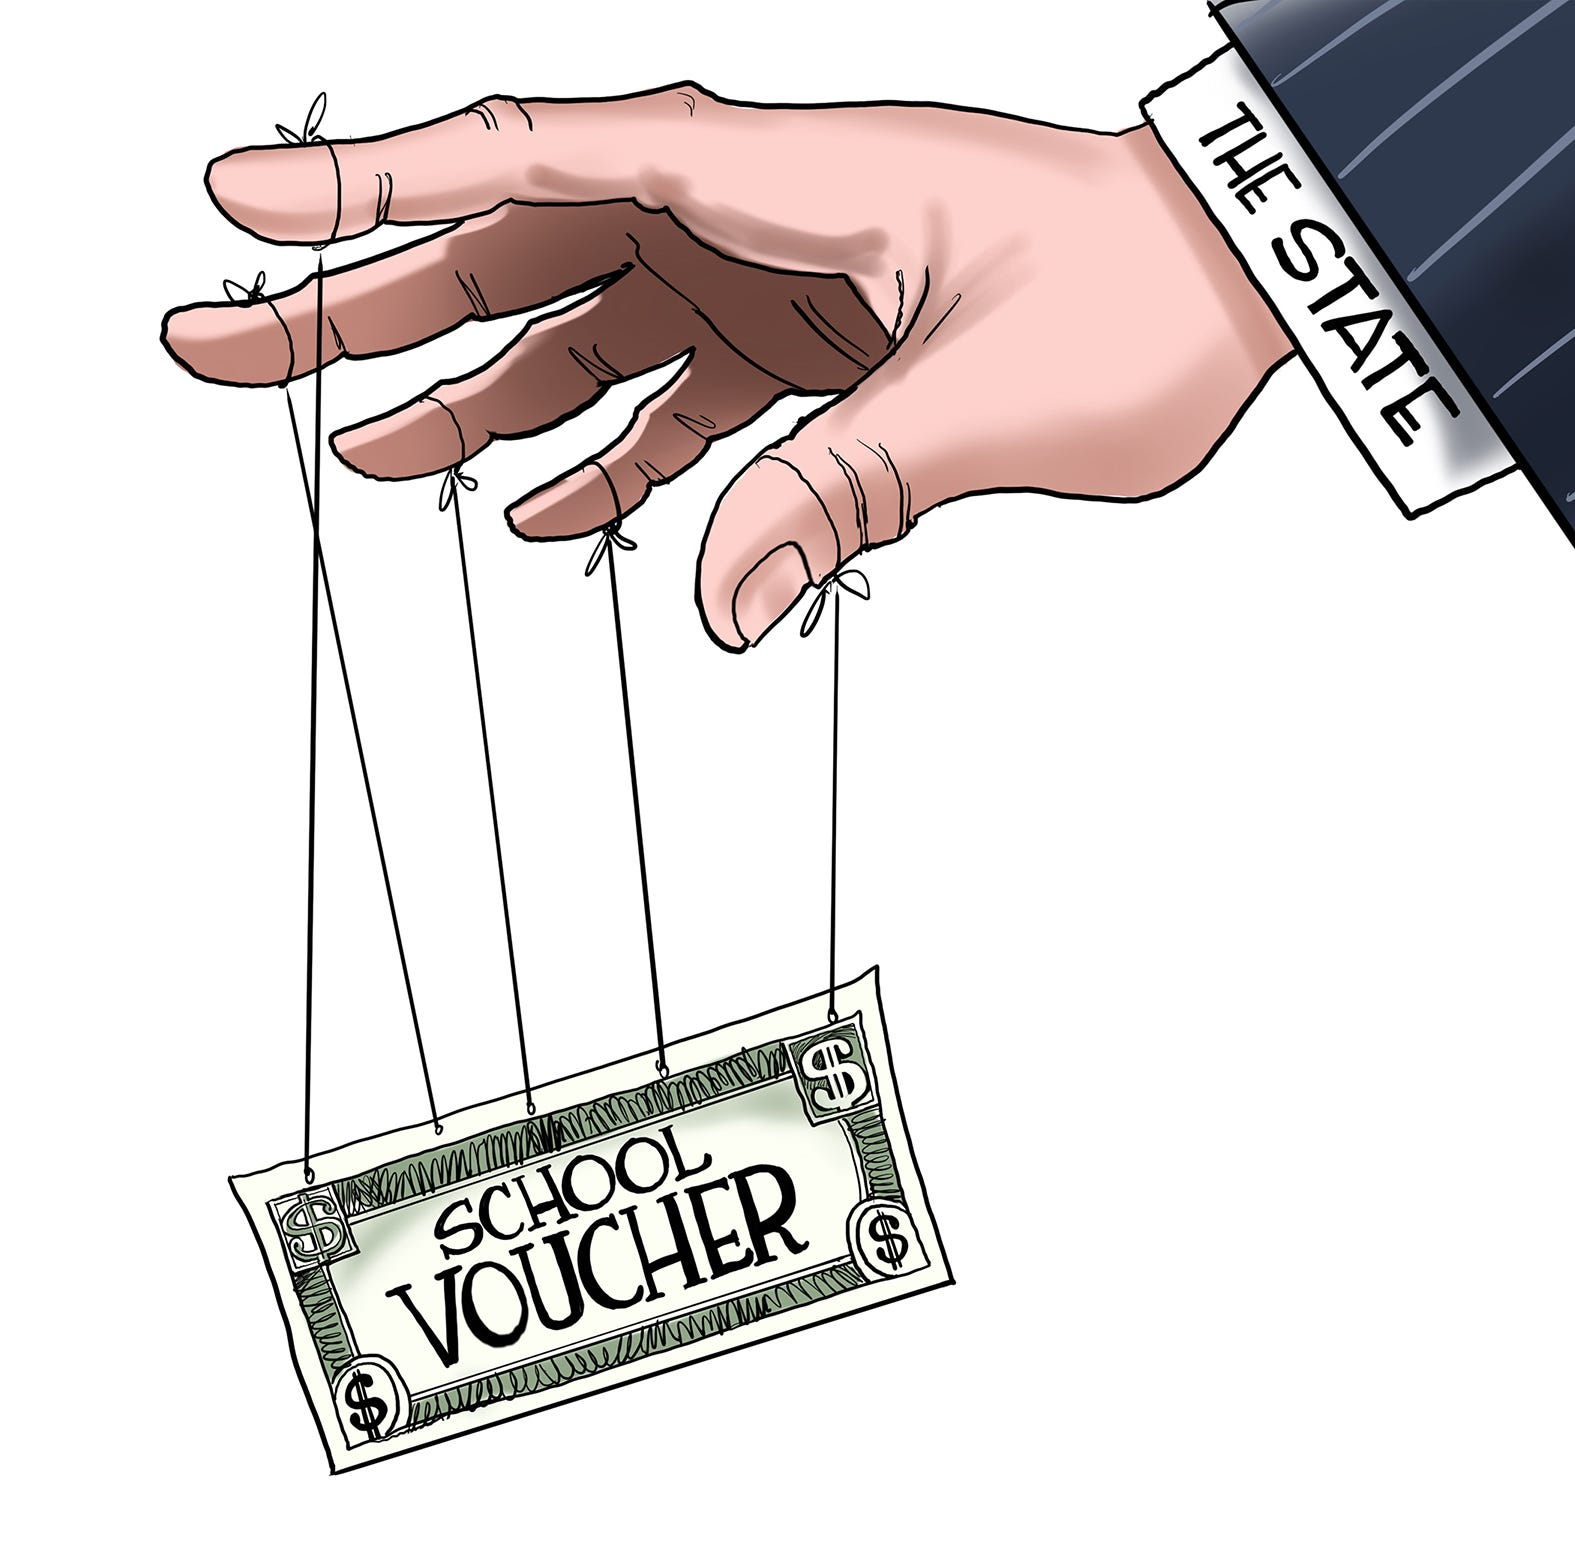 Cartoonist Gary Varvel: The problem with school vouchers